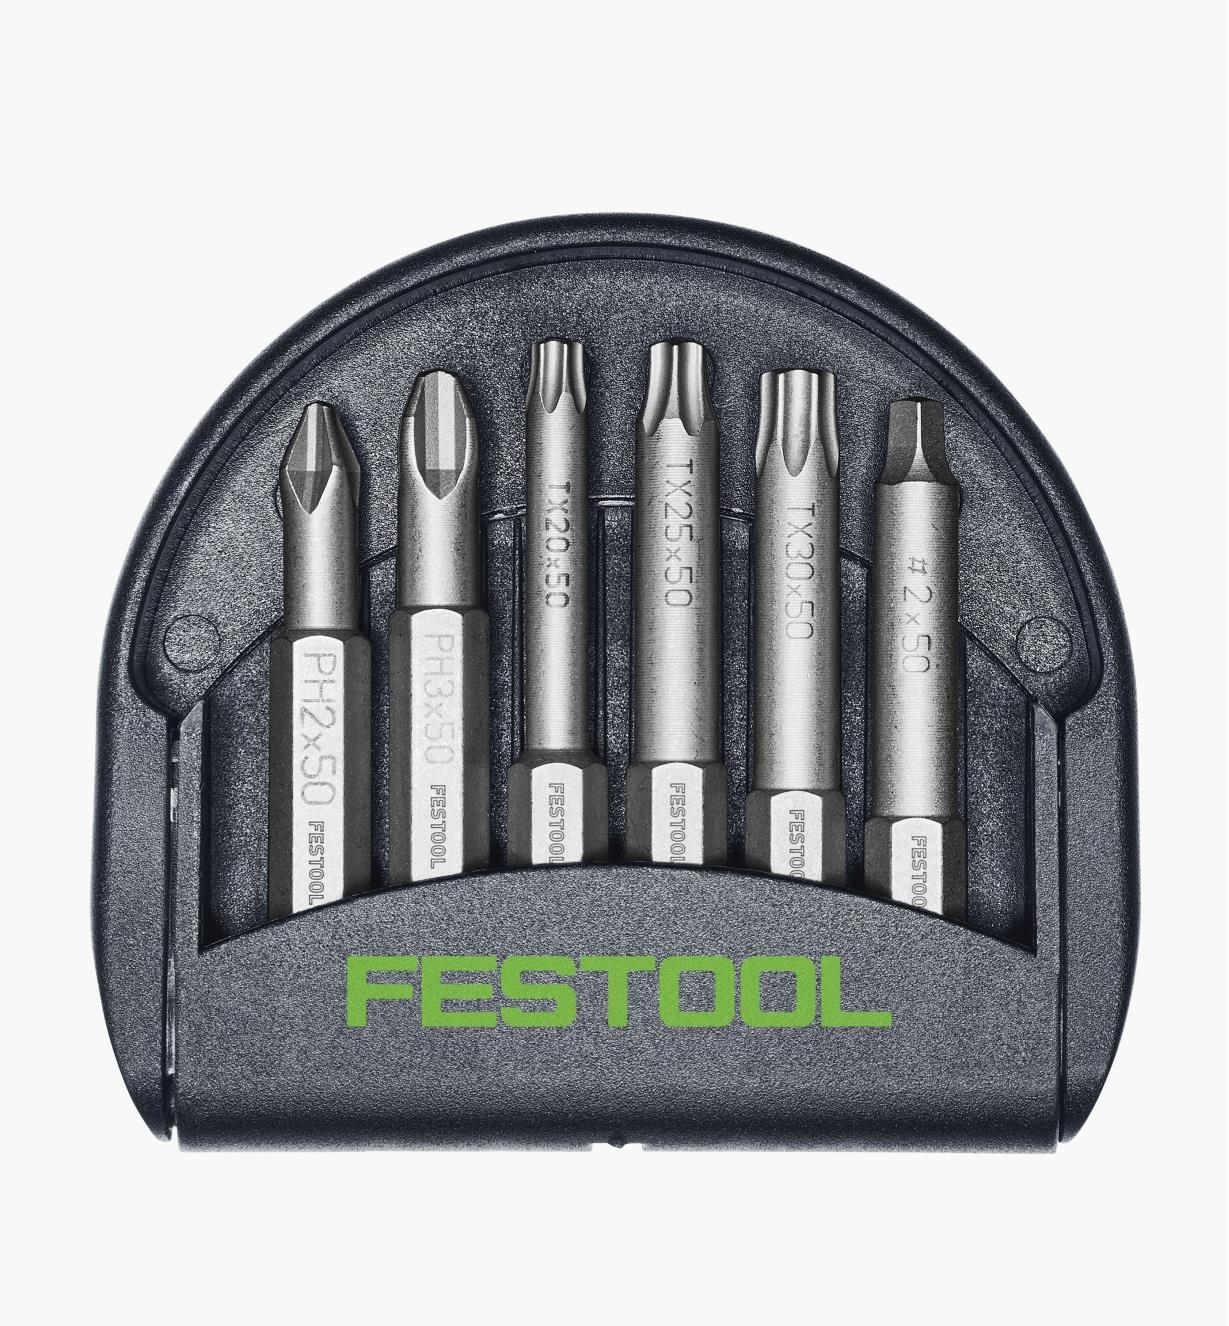 ZA204386 - Festool Bit Cassette BT-IMP SORT6